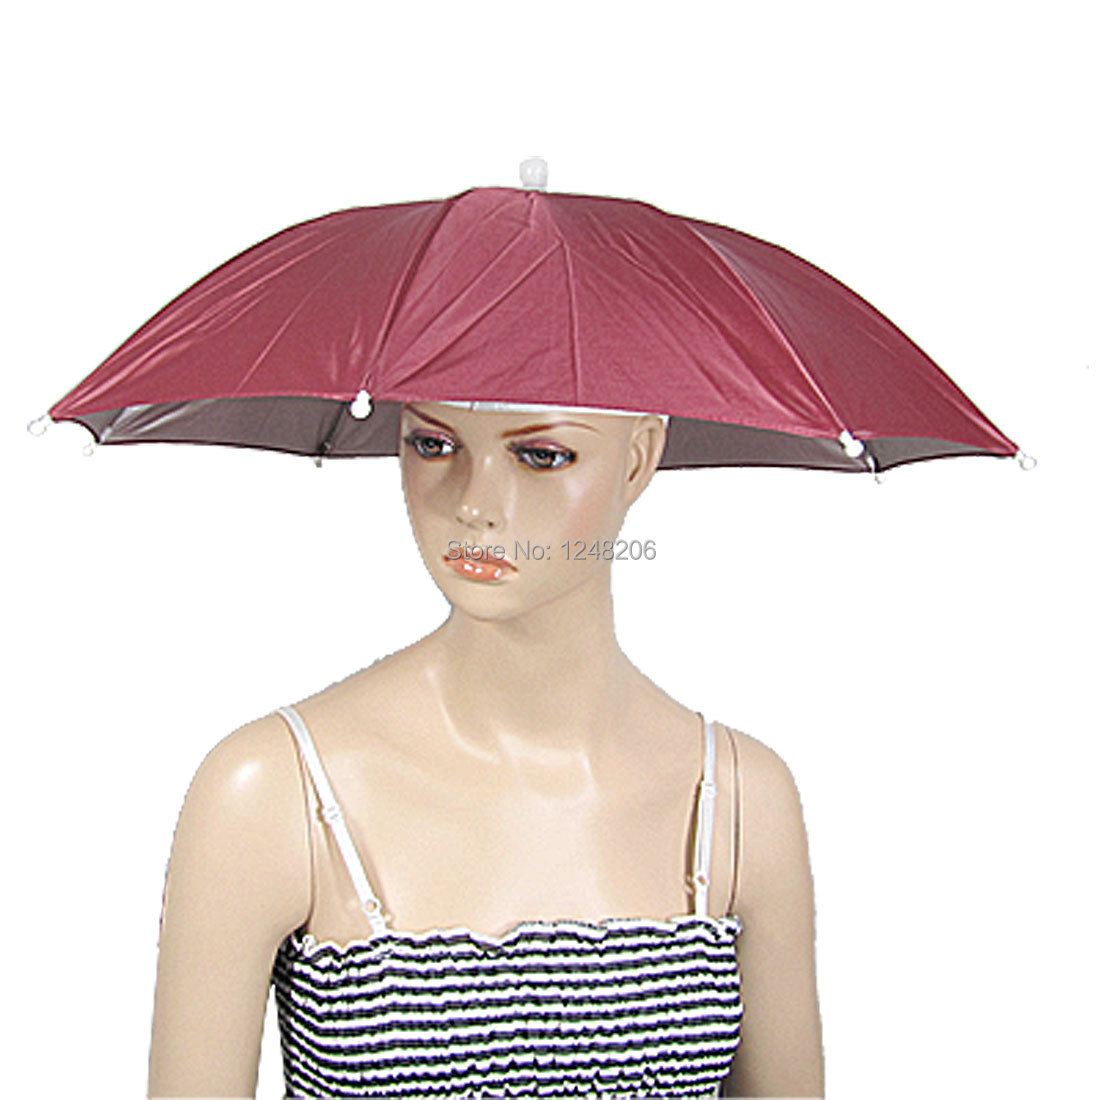 79e935956abd3 Get Quotations · Fishing Sports Sun Rain Umbrella Hat Headwear 25.6